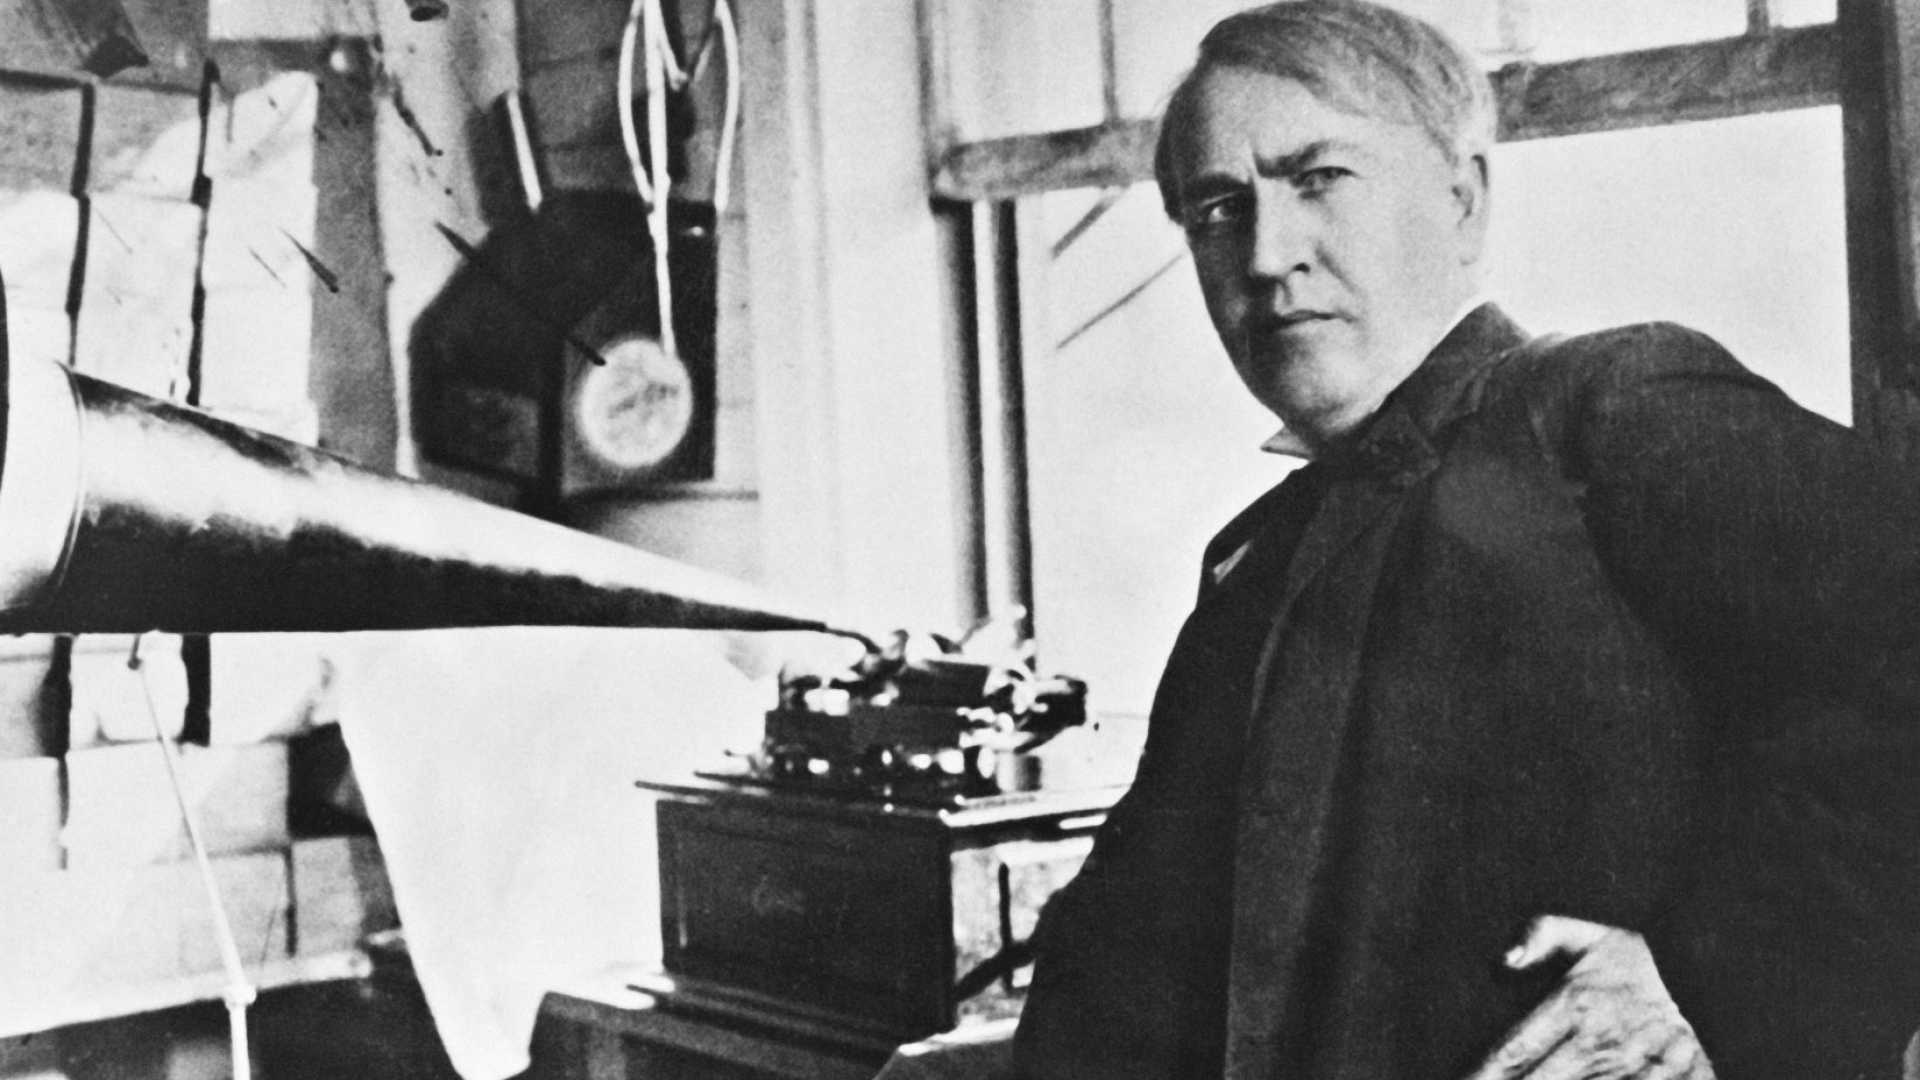 Thomas Edison with an early phonograph.